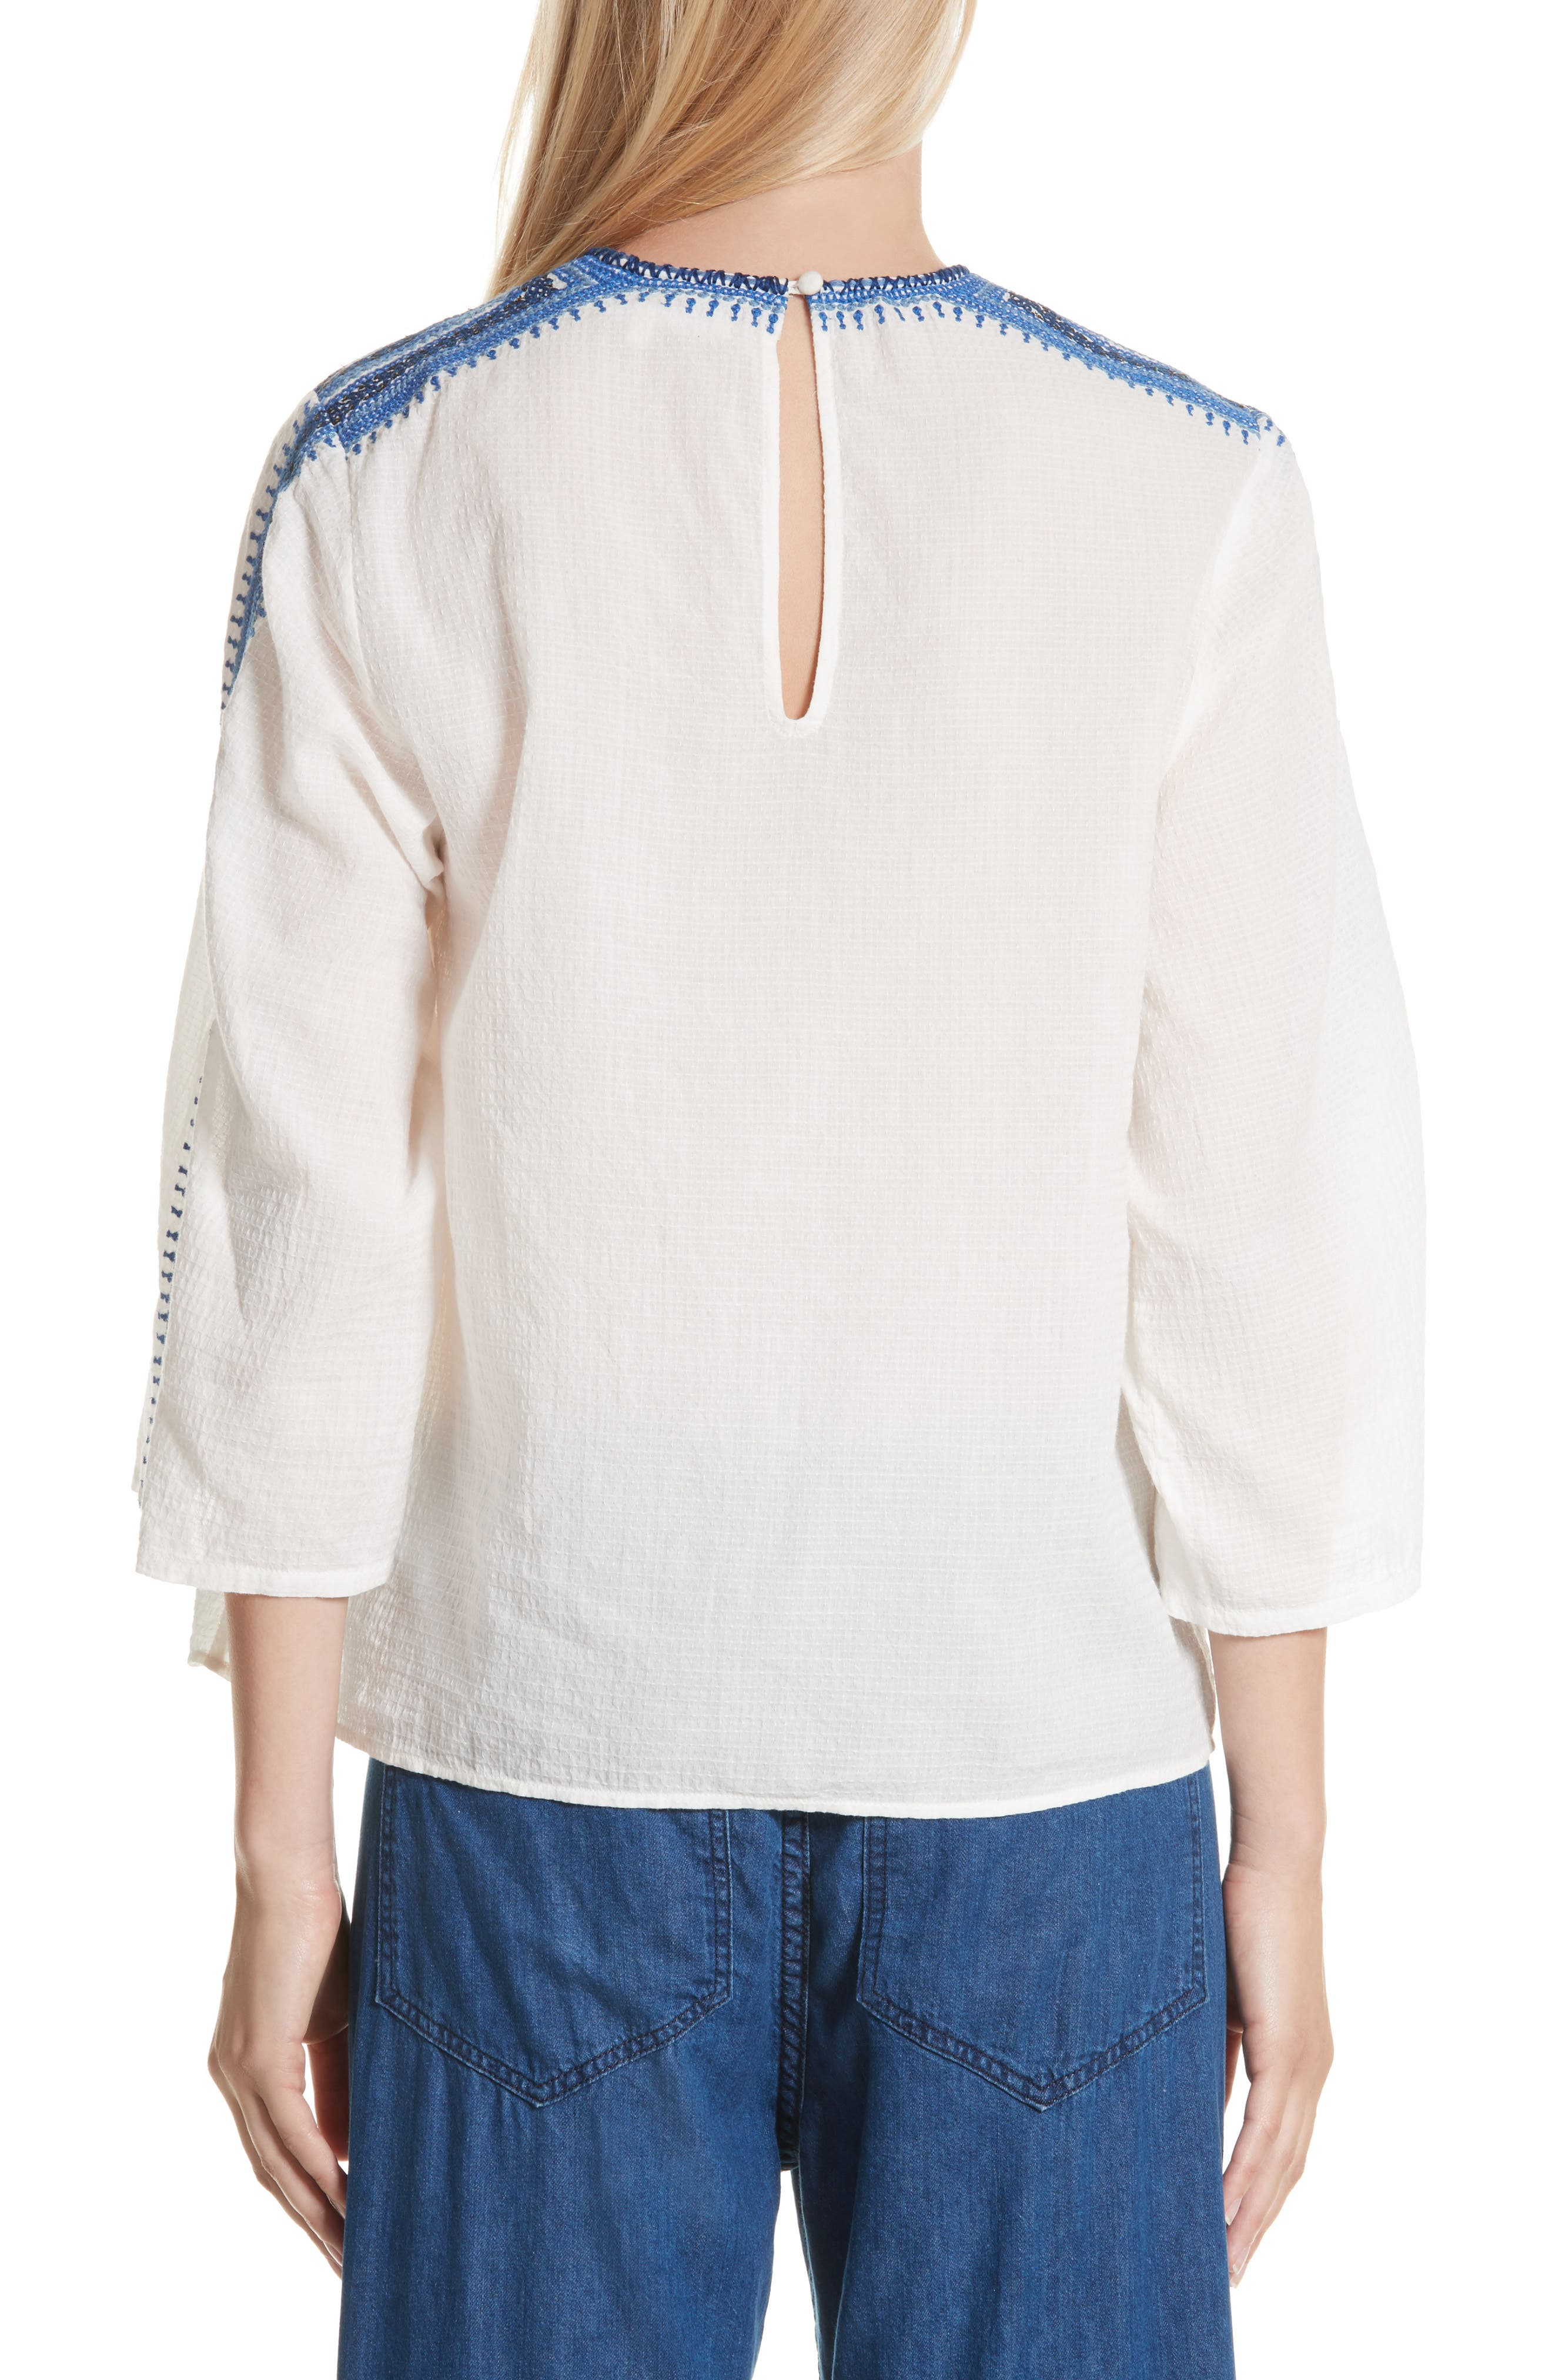 The Oasis Embroidered Top,                             Alternate thumbnail 2, color,